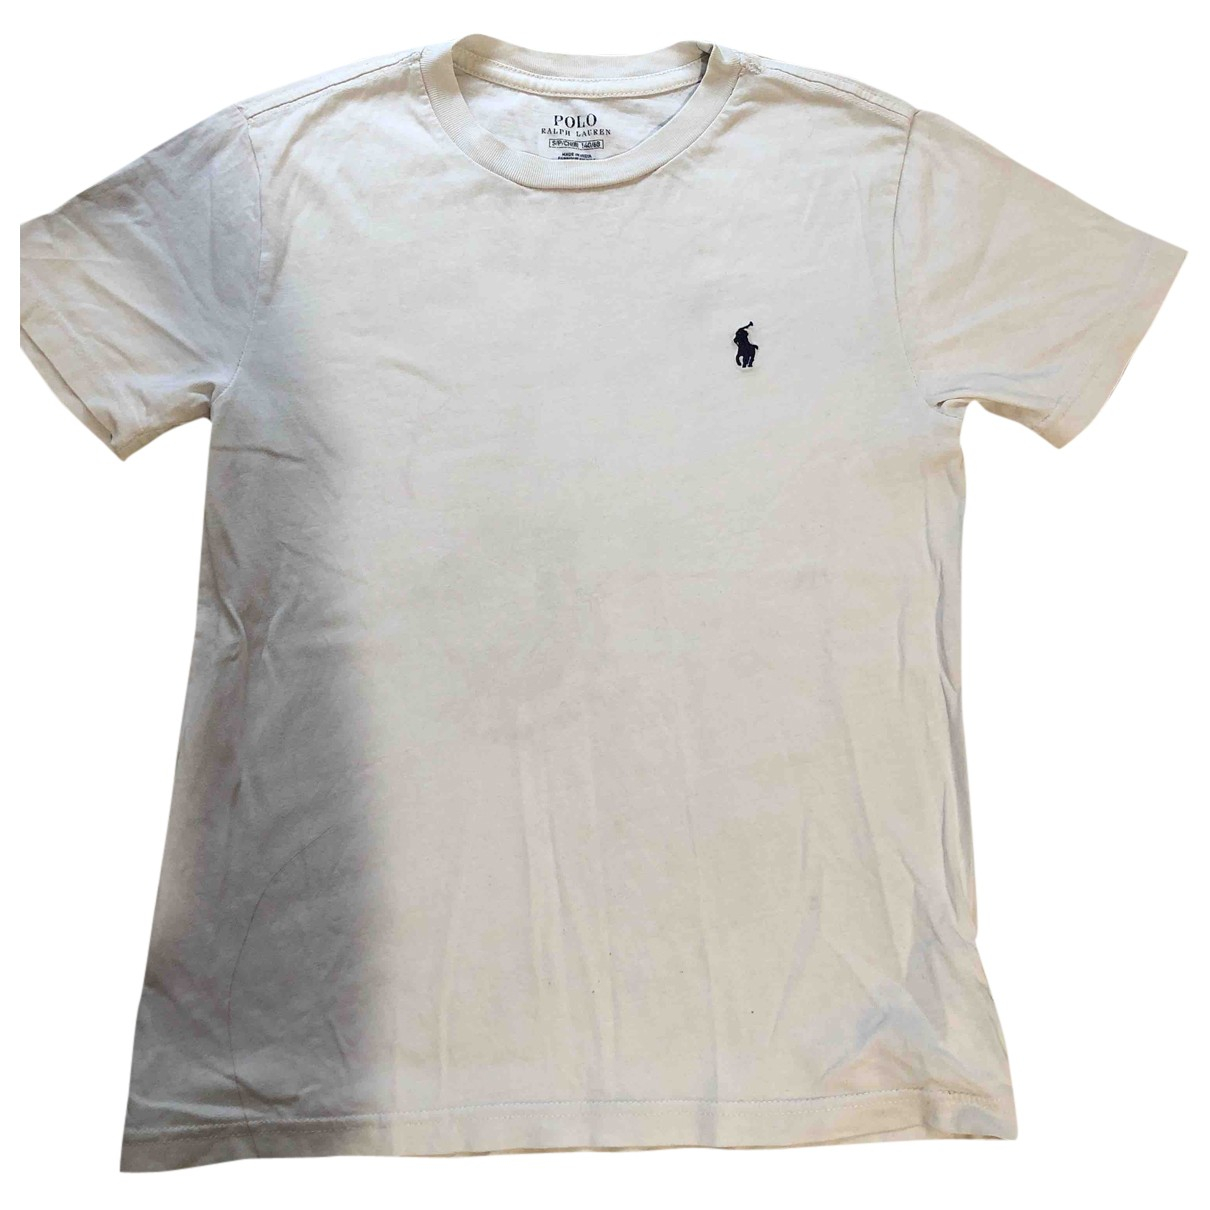 Polo Ralph Lauren N White Cotton  top for Kids 12 years - XS FR